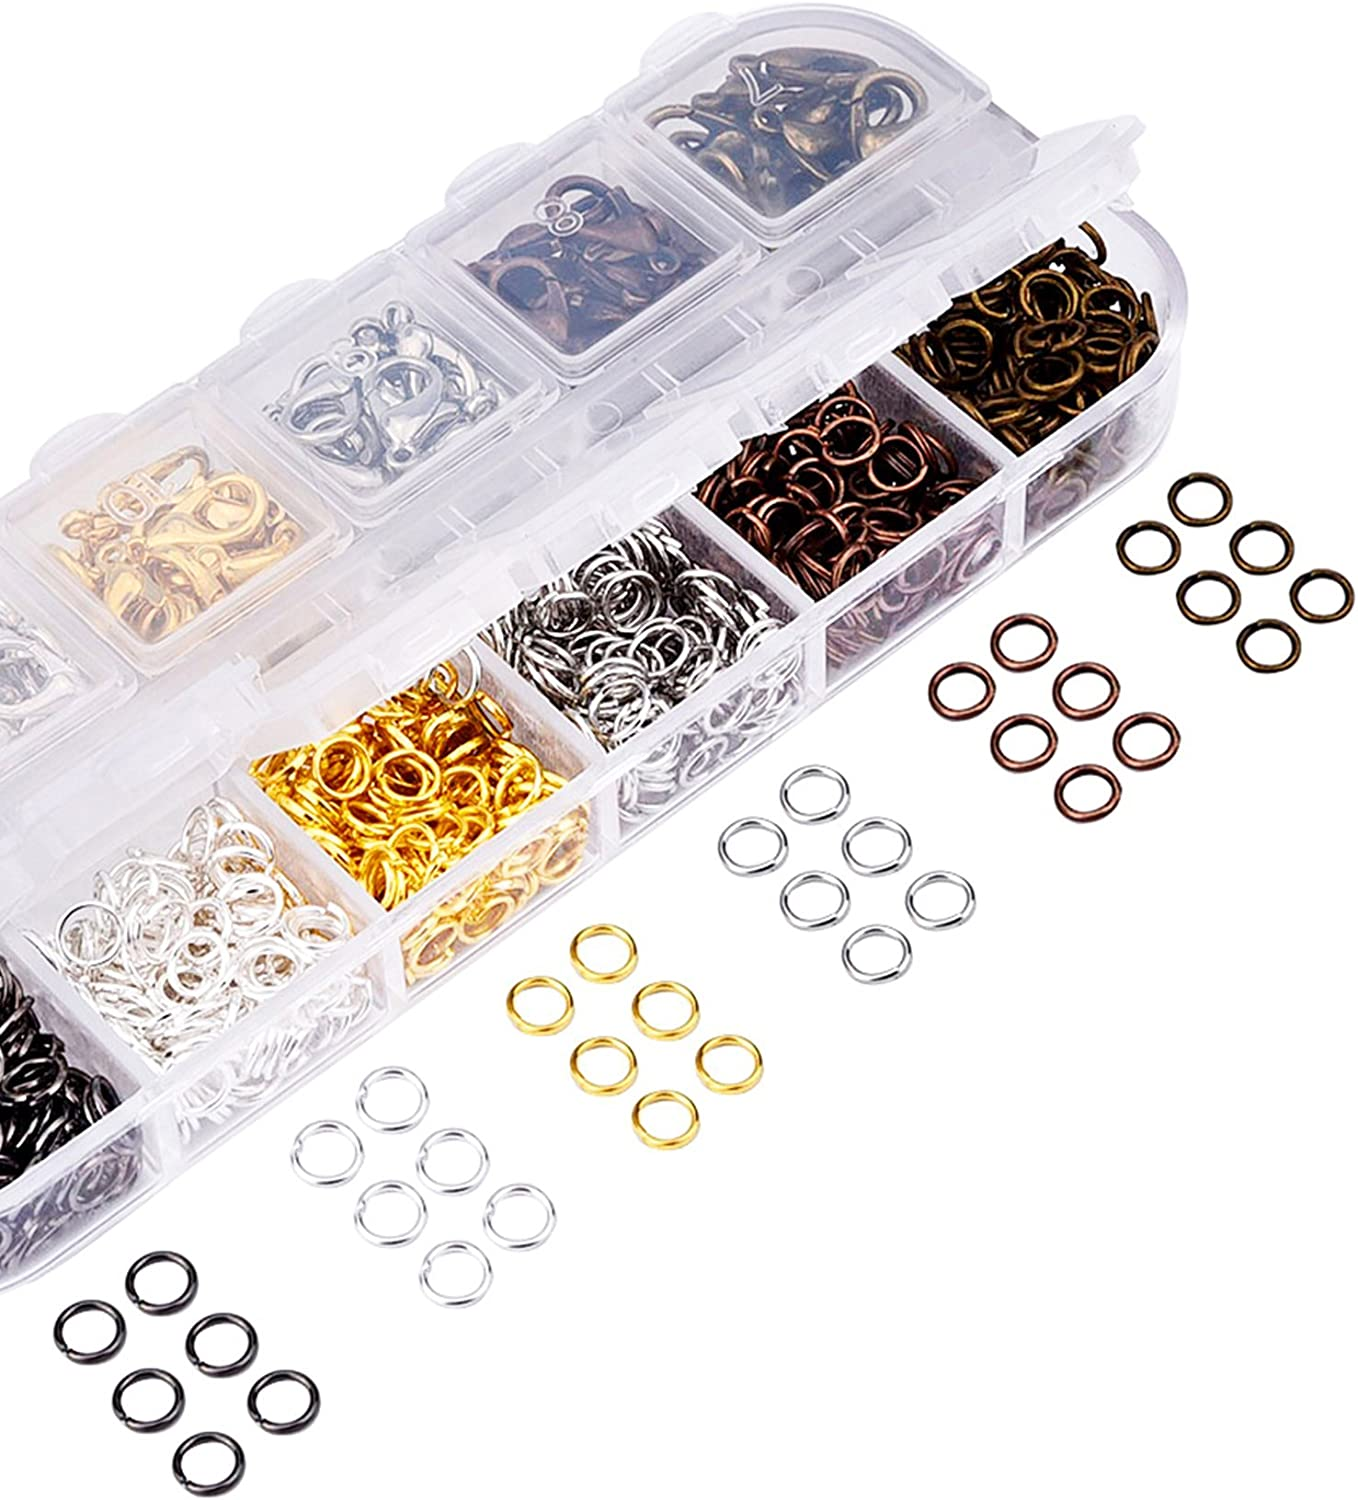 Mudder 6 Colors Lobster Claw Clasps and 6 Colors Open Jump Rings for Jewelry Making 12 mm, 5 mm